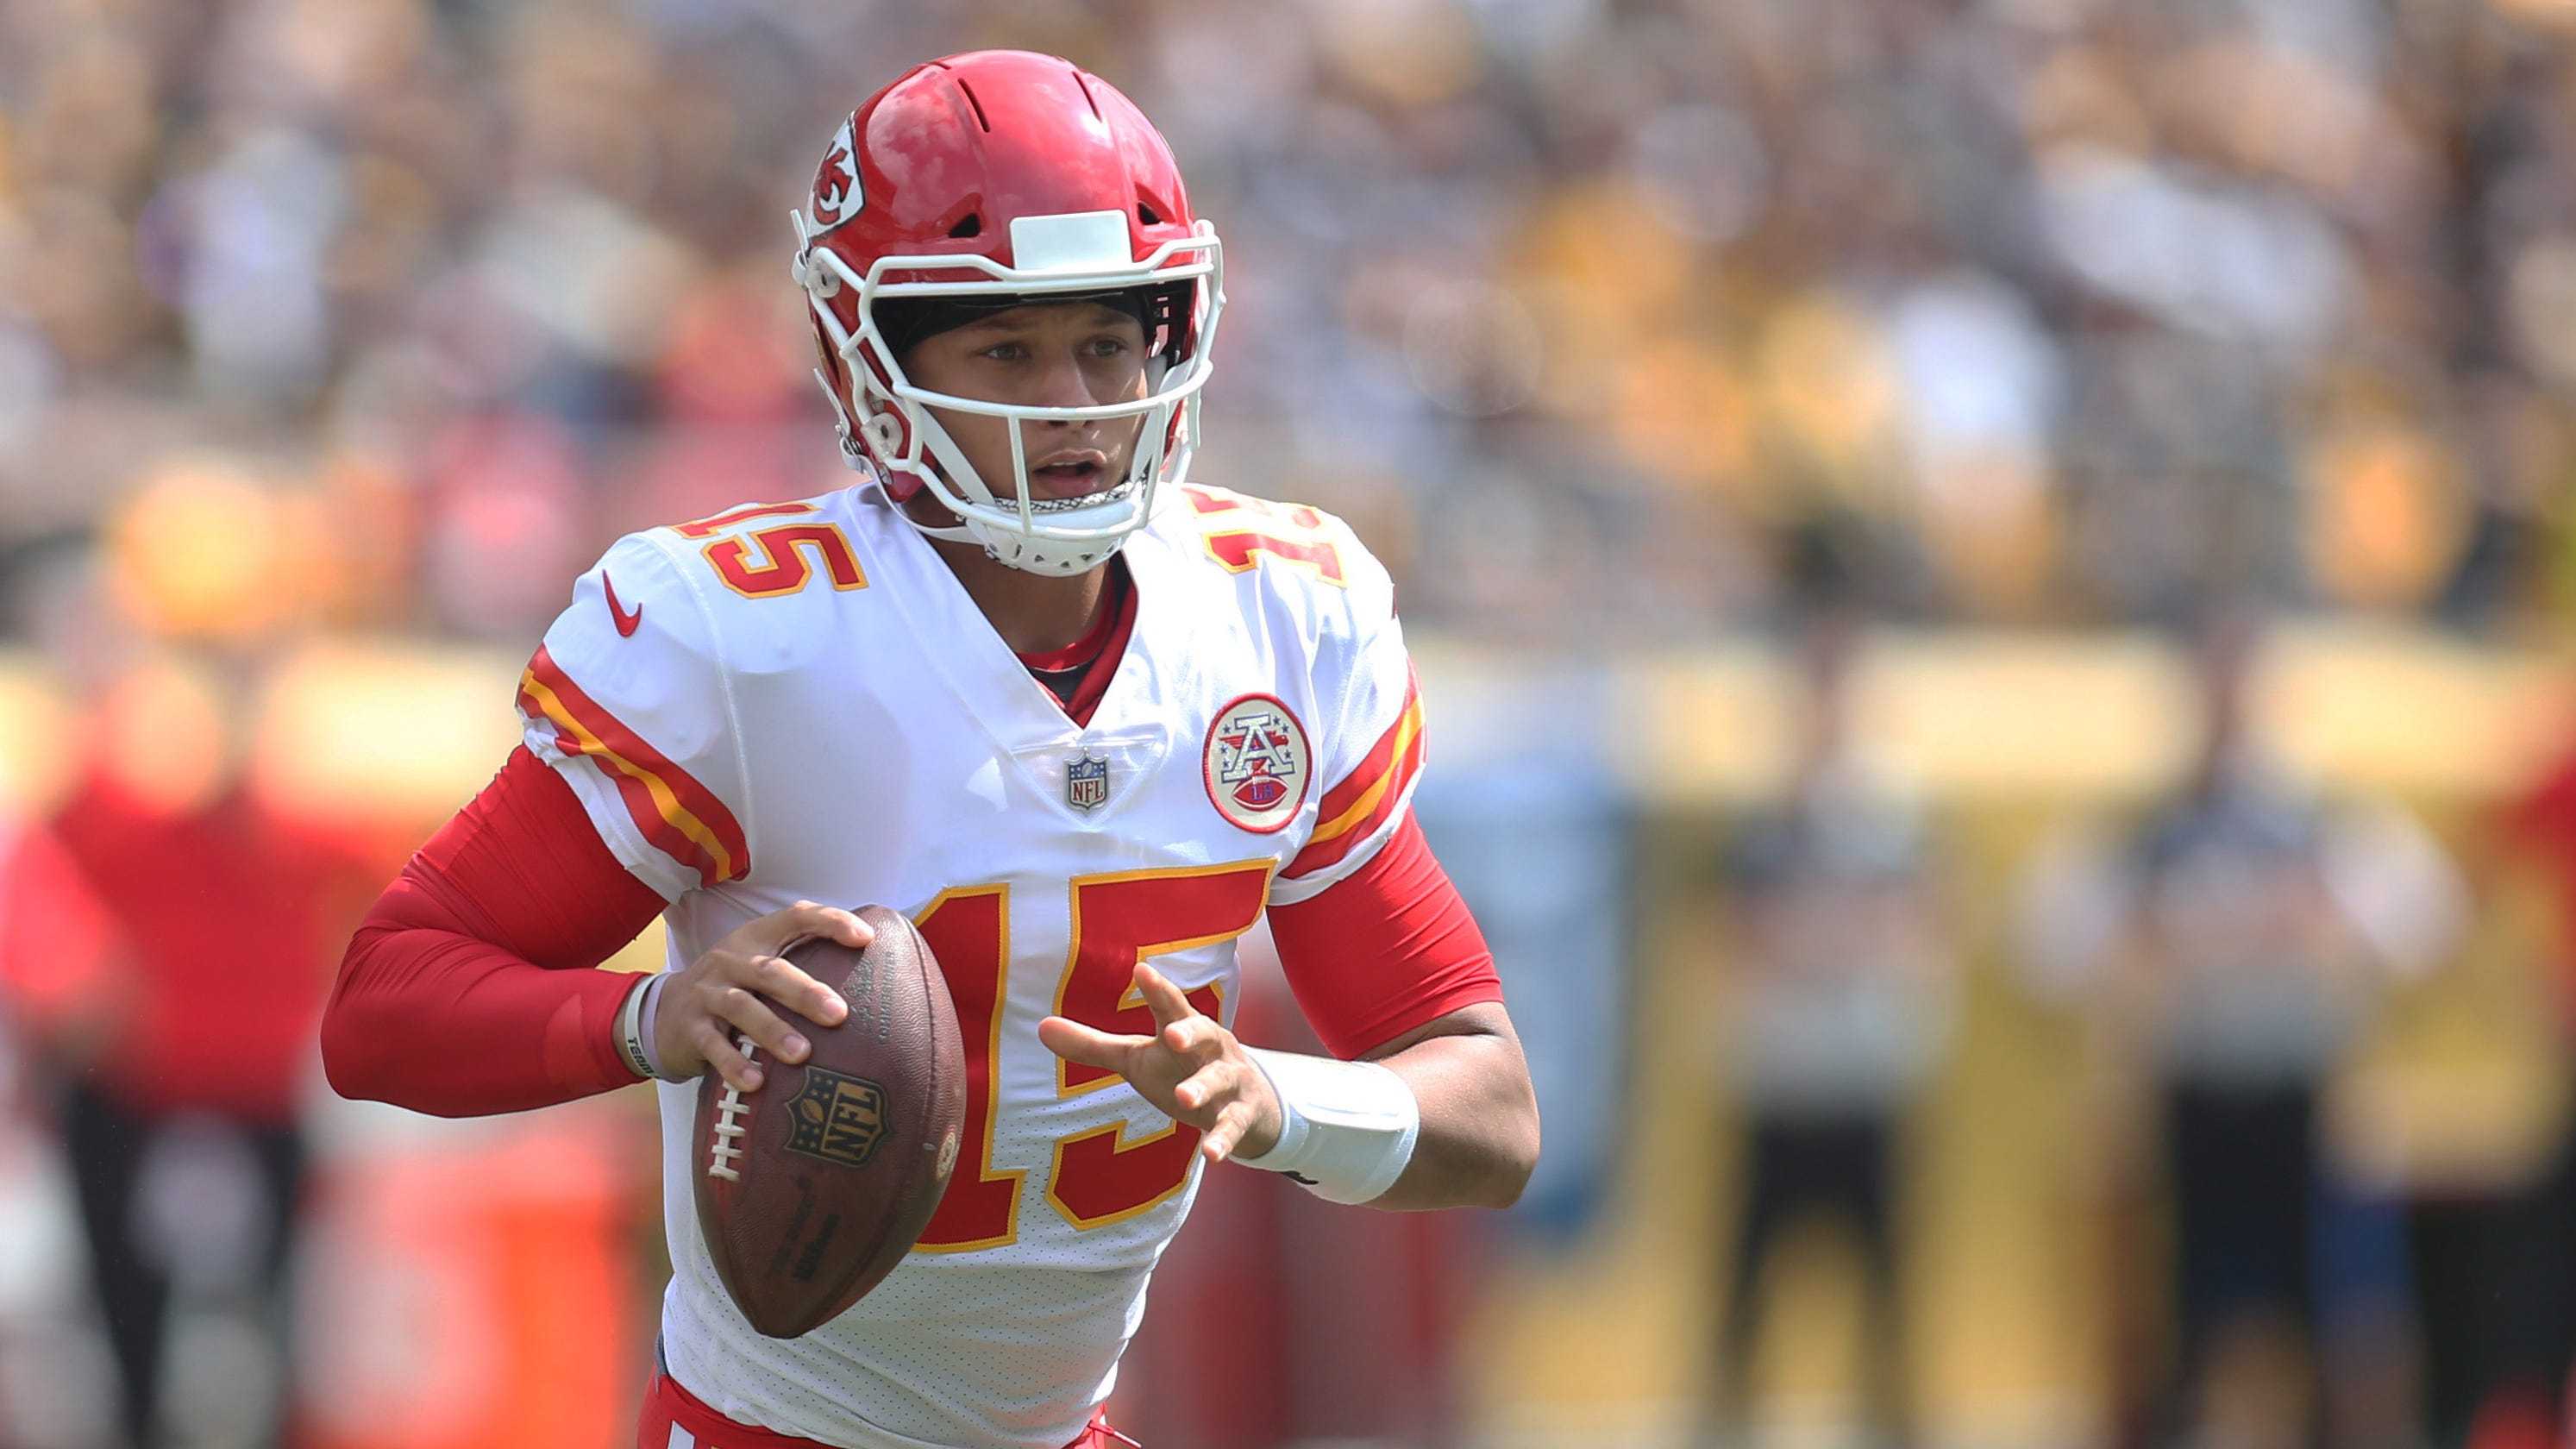 bb929755c Eight questions for NFL Week 3  Will Patrick Mahomes stay red hot